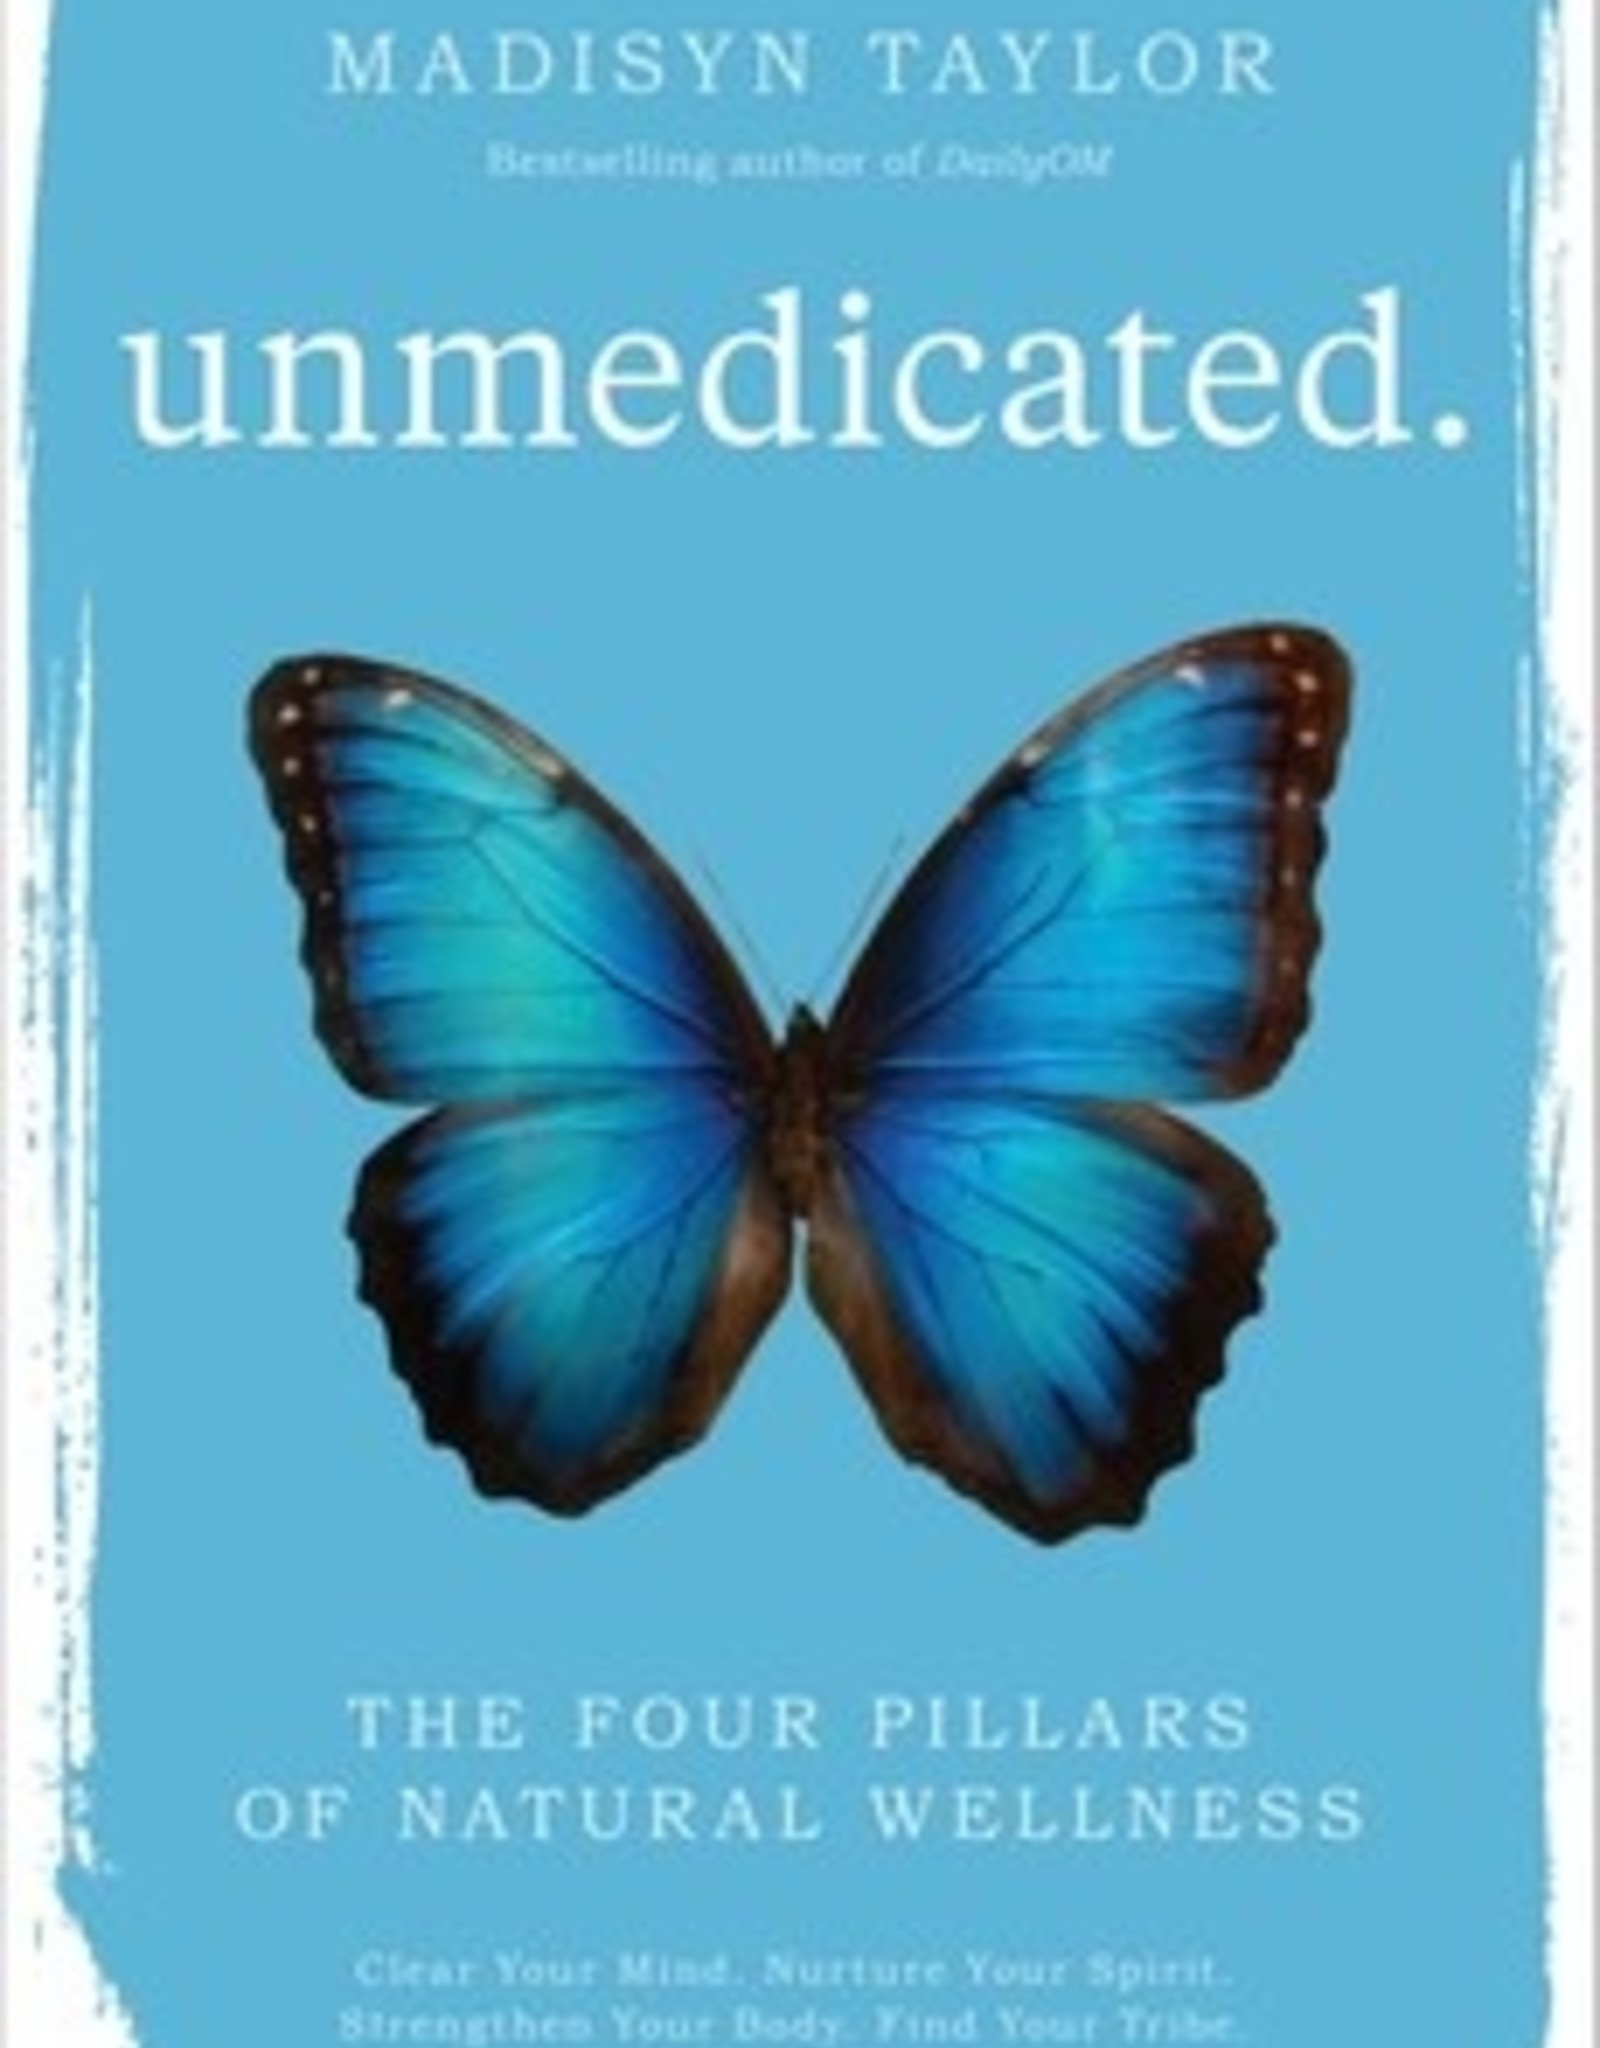 Simon & Schuster Unmedicated (1/21)